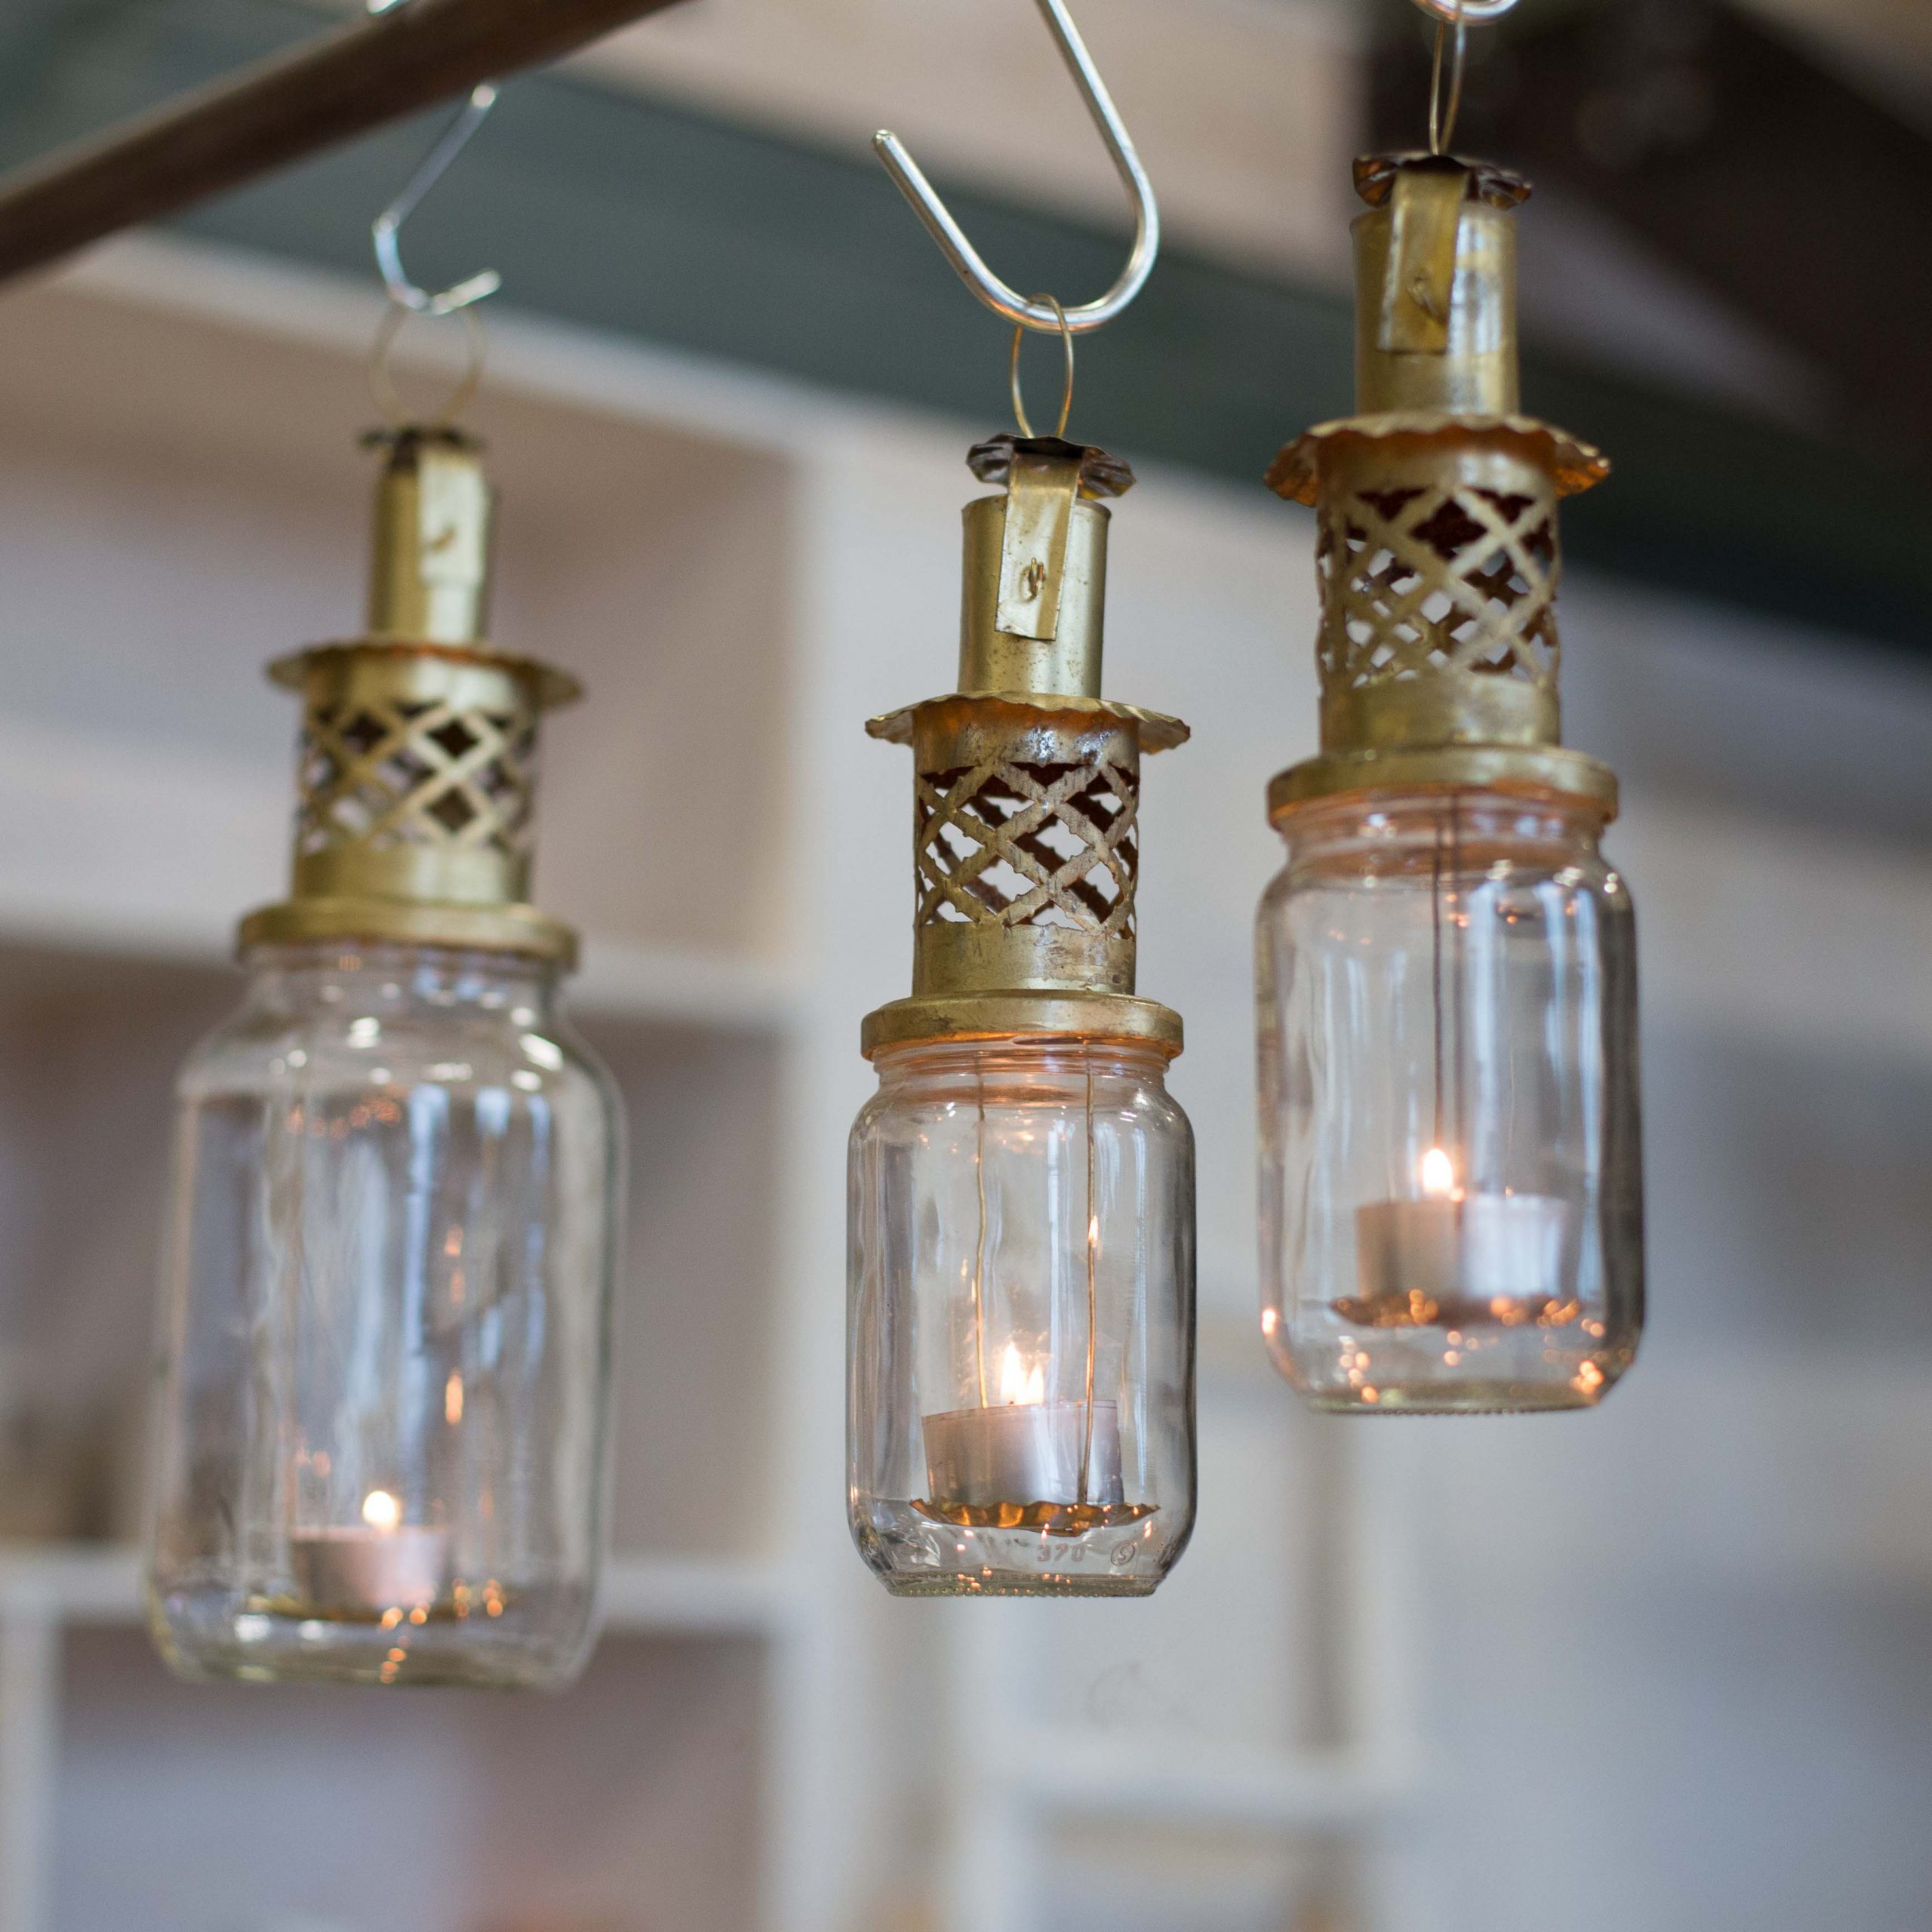 Recycled candle holders